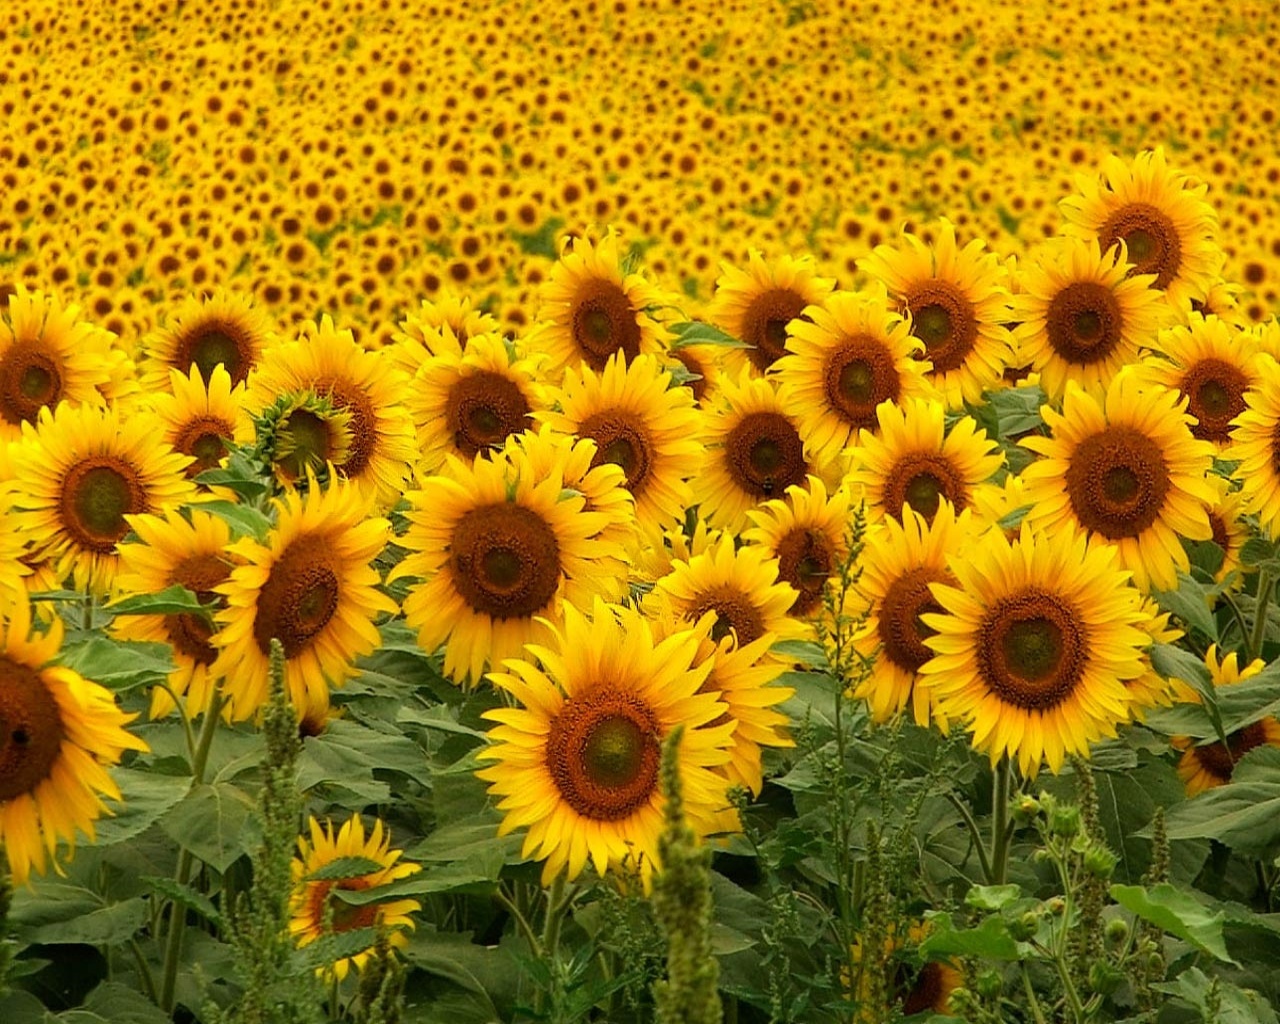 sunflowers-1280x1024